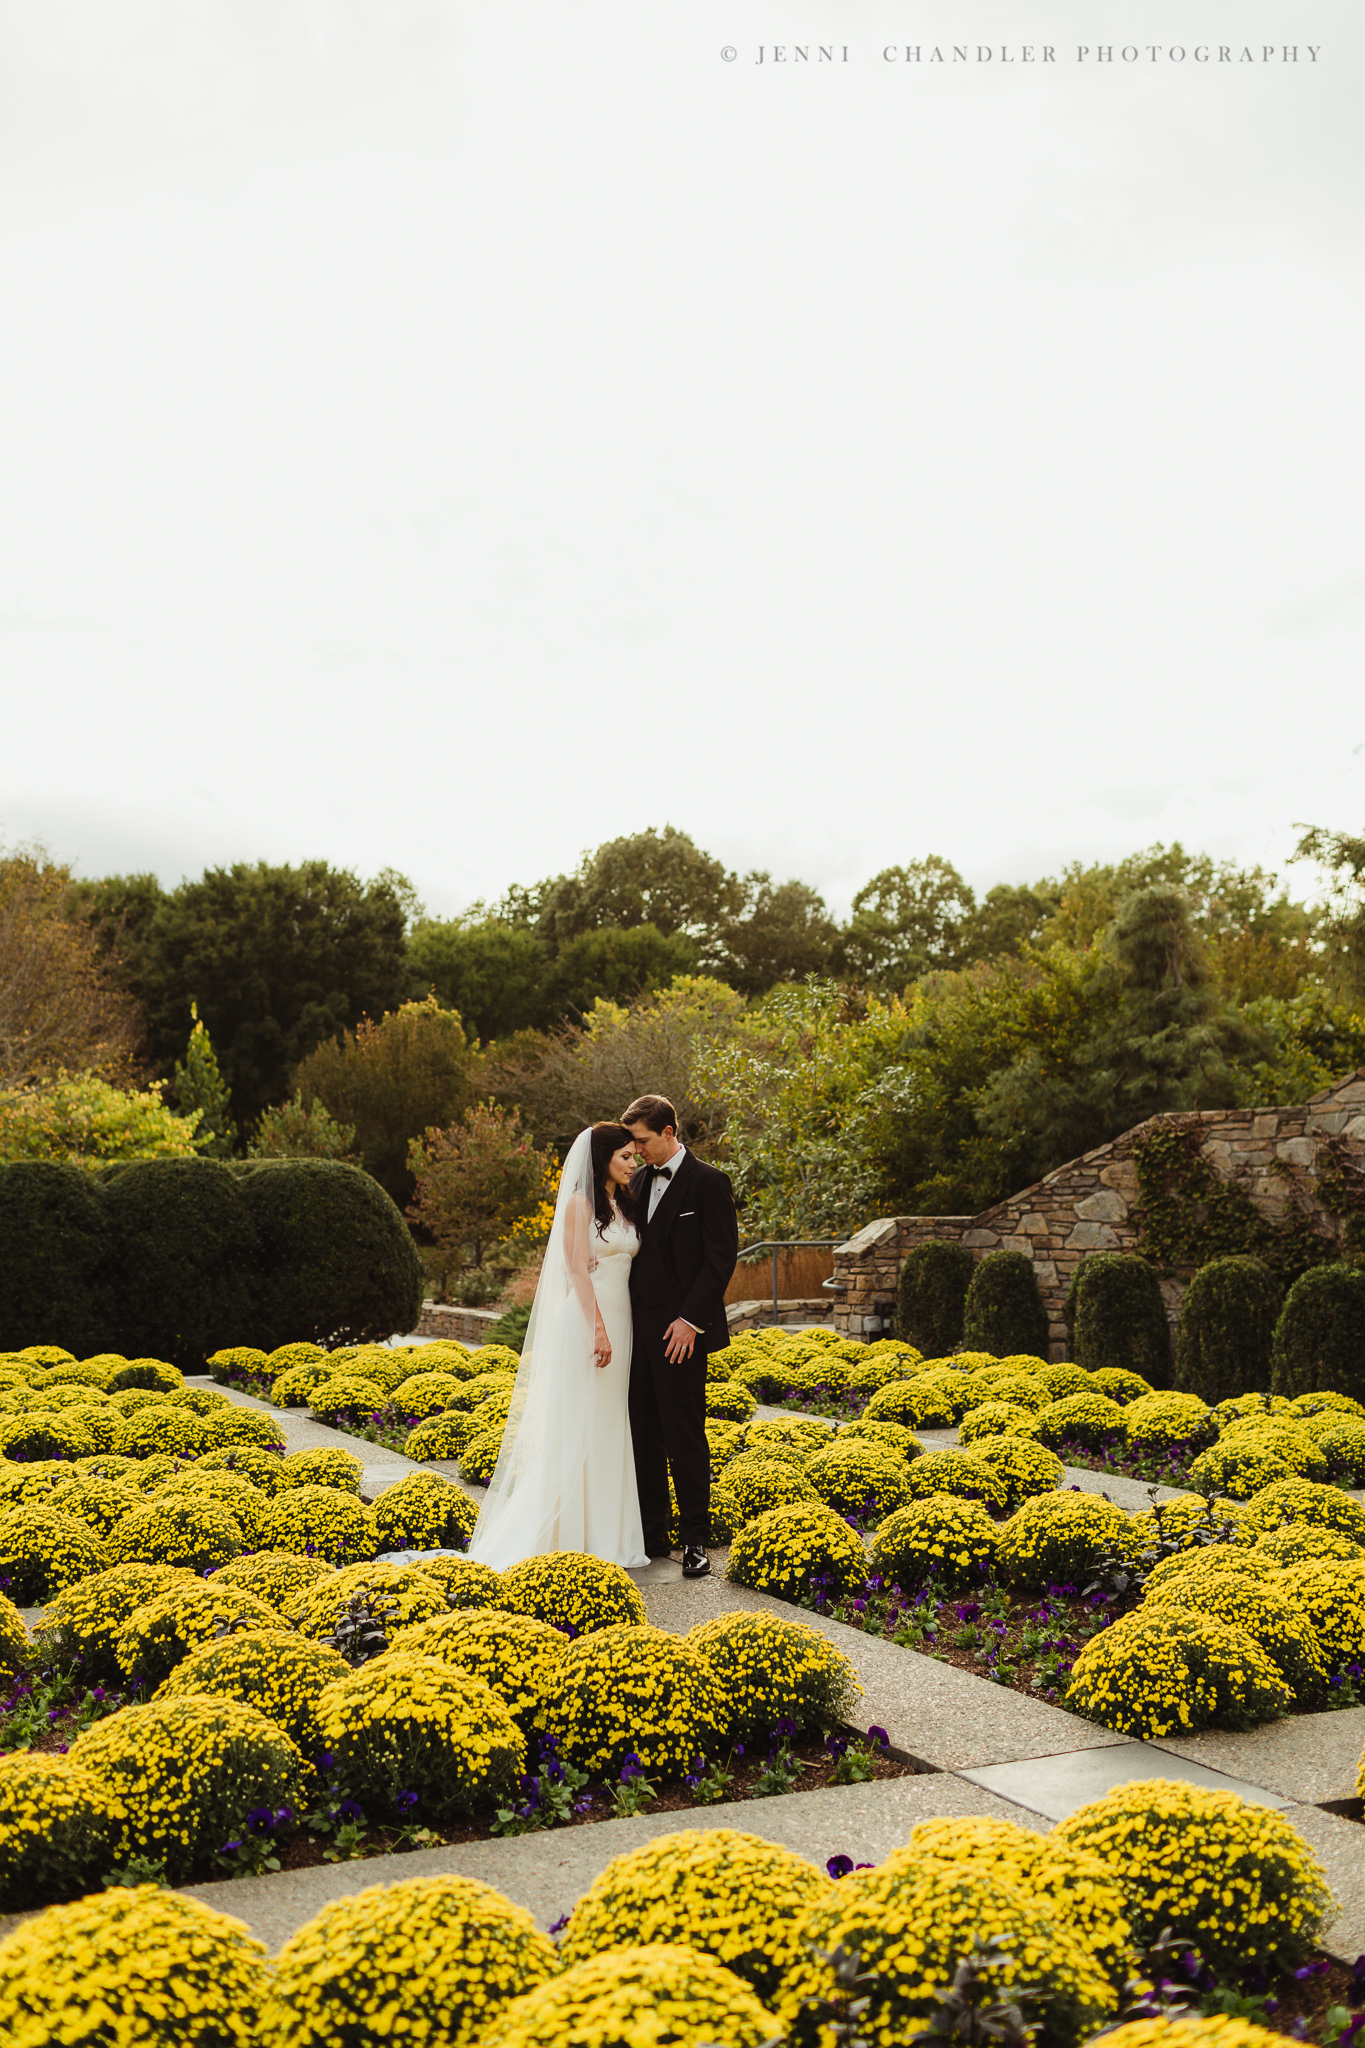 jennichandlerphotography_NCArboretum_2017FallWedding_WEB-47.jpg